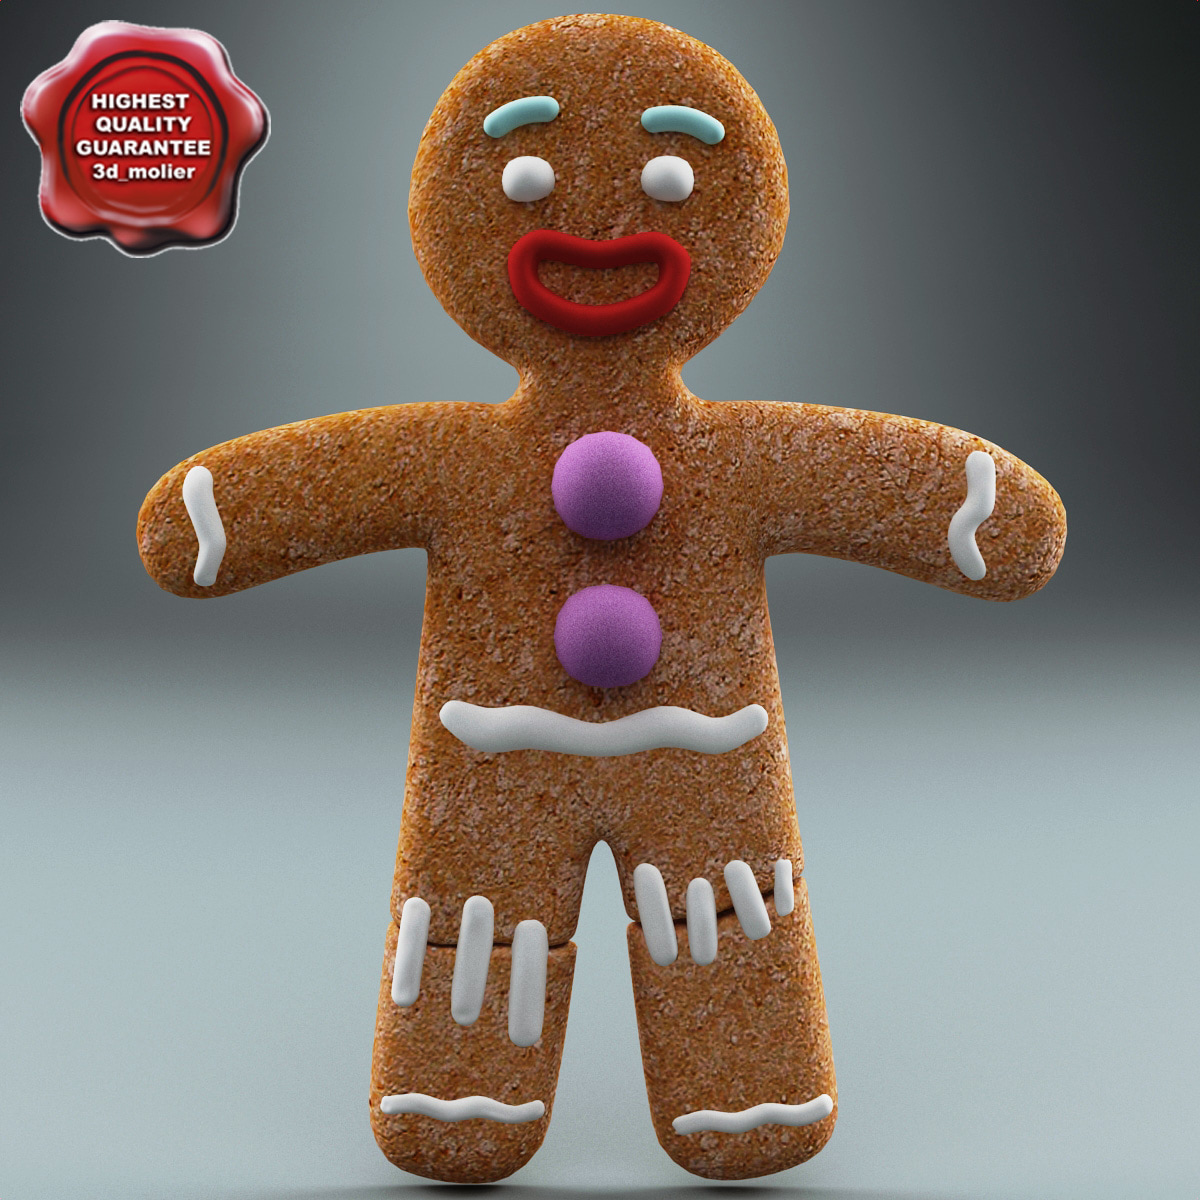 Gingerbread_Man_Static_00.jpg